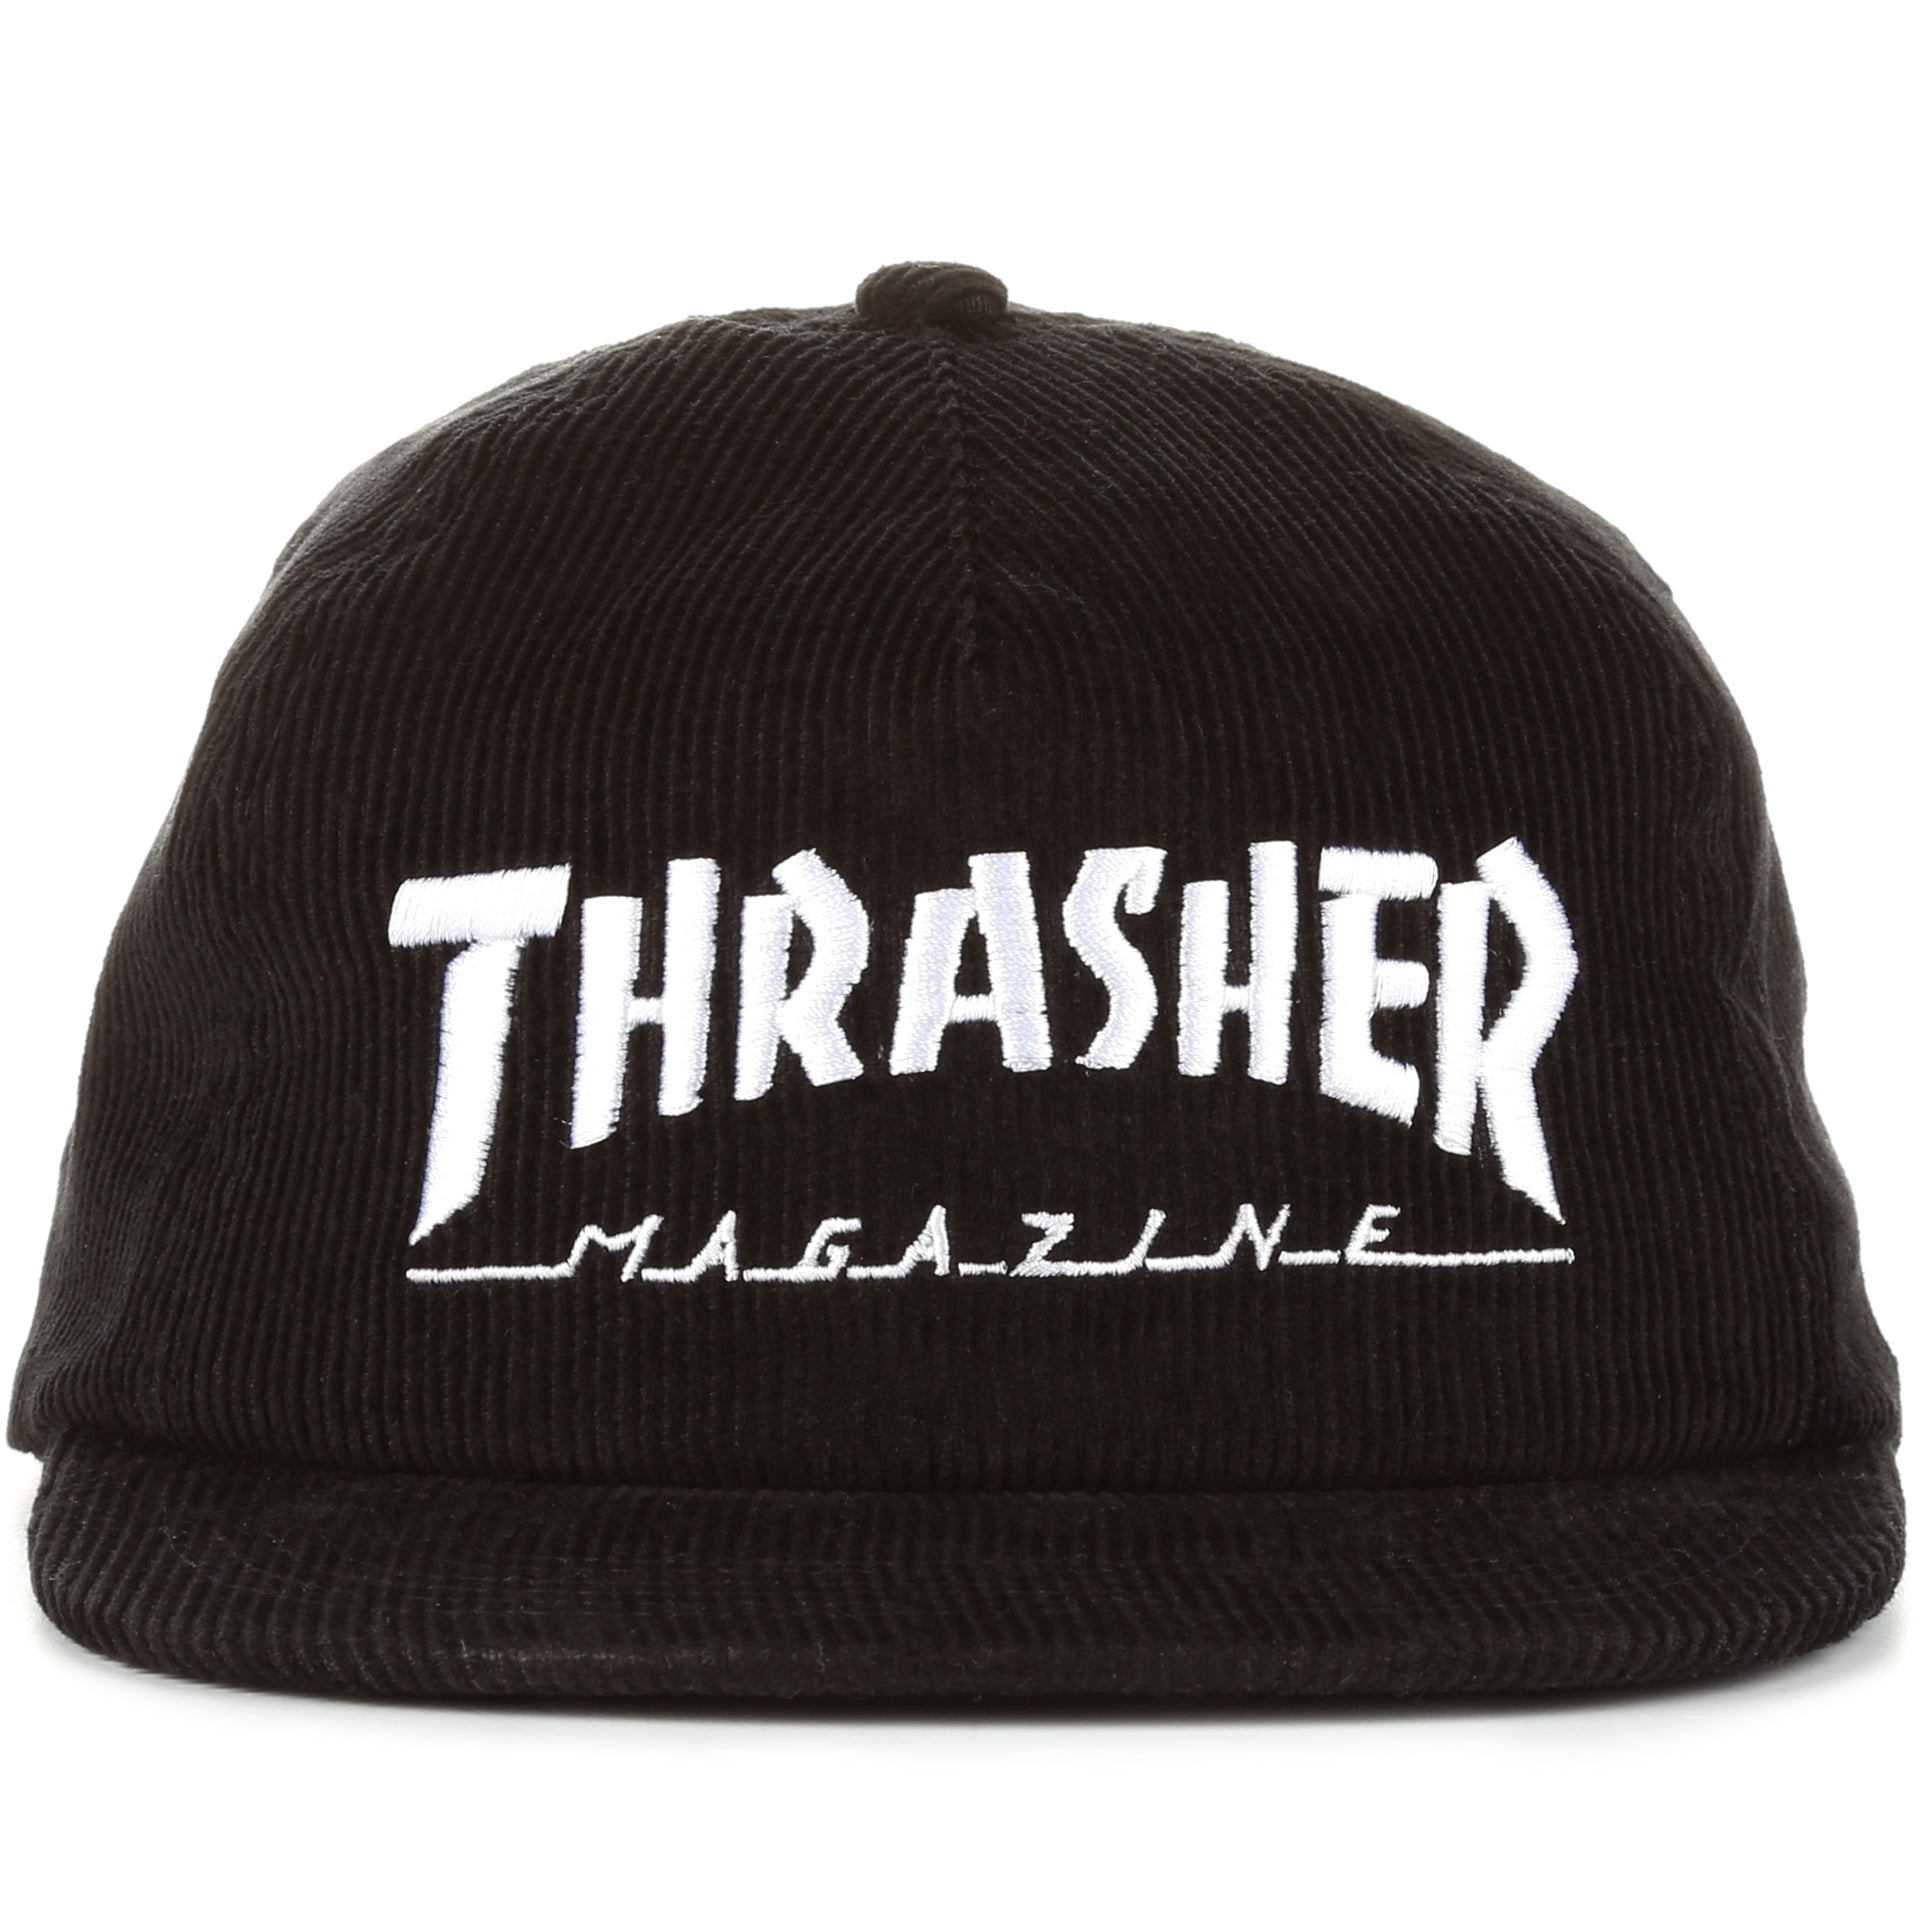 9cd0e935afc Thrasher Magazine Logo Corduroy Snapback - Black - New Star